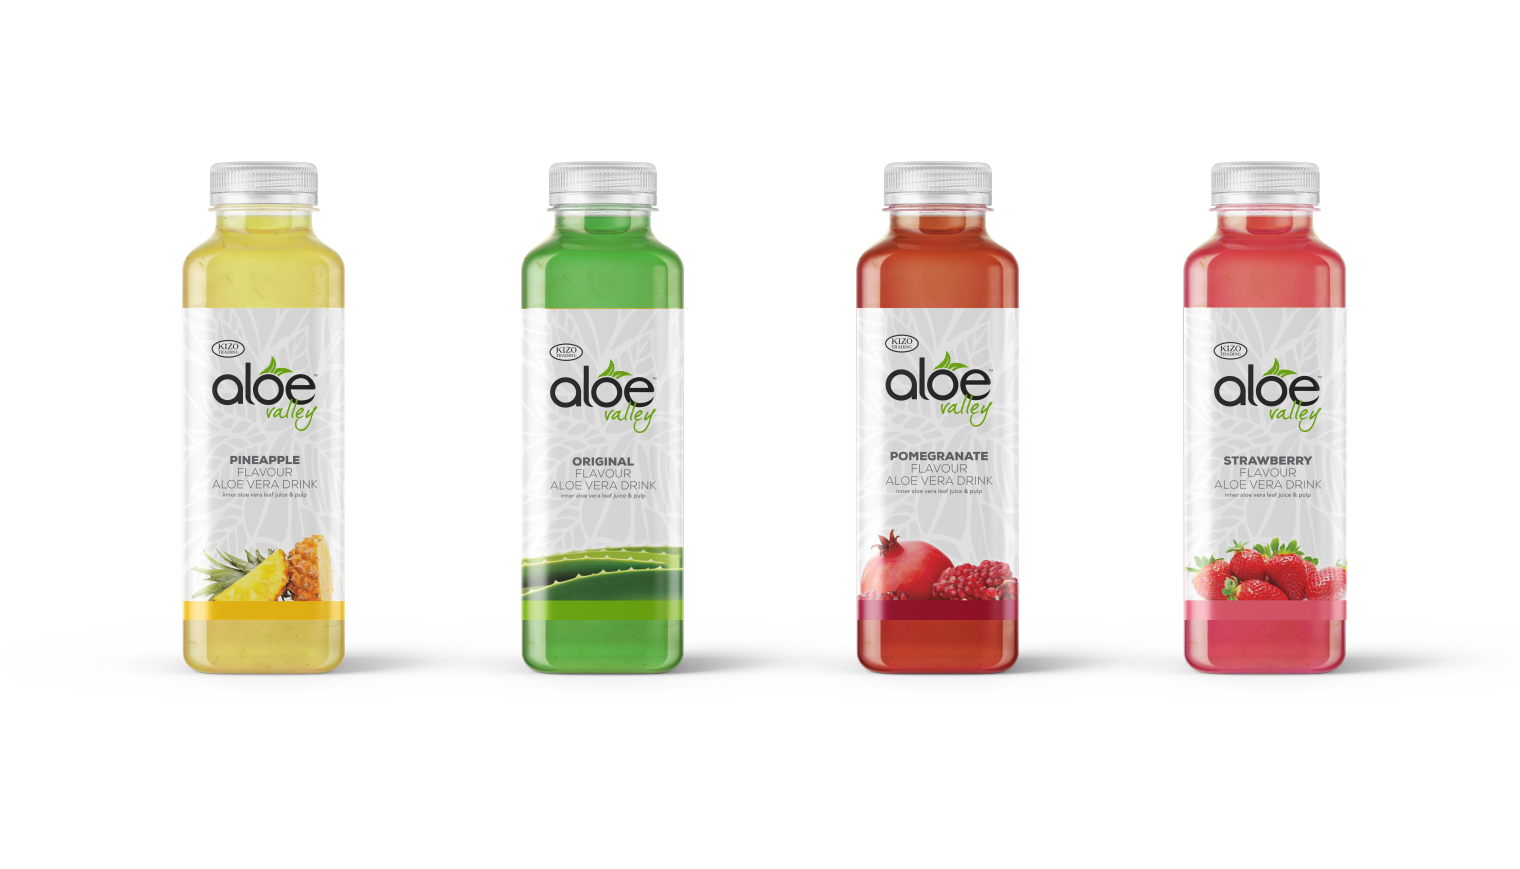 Aloe Vera Juice Packaging Design